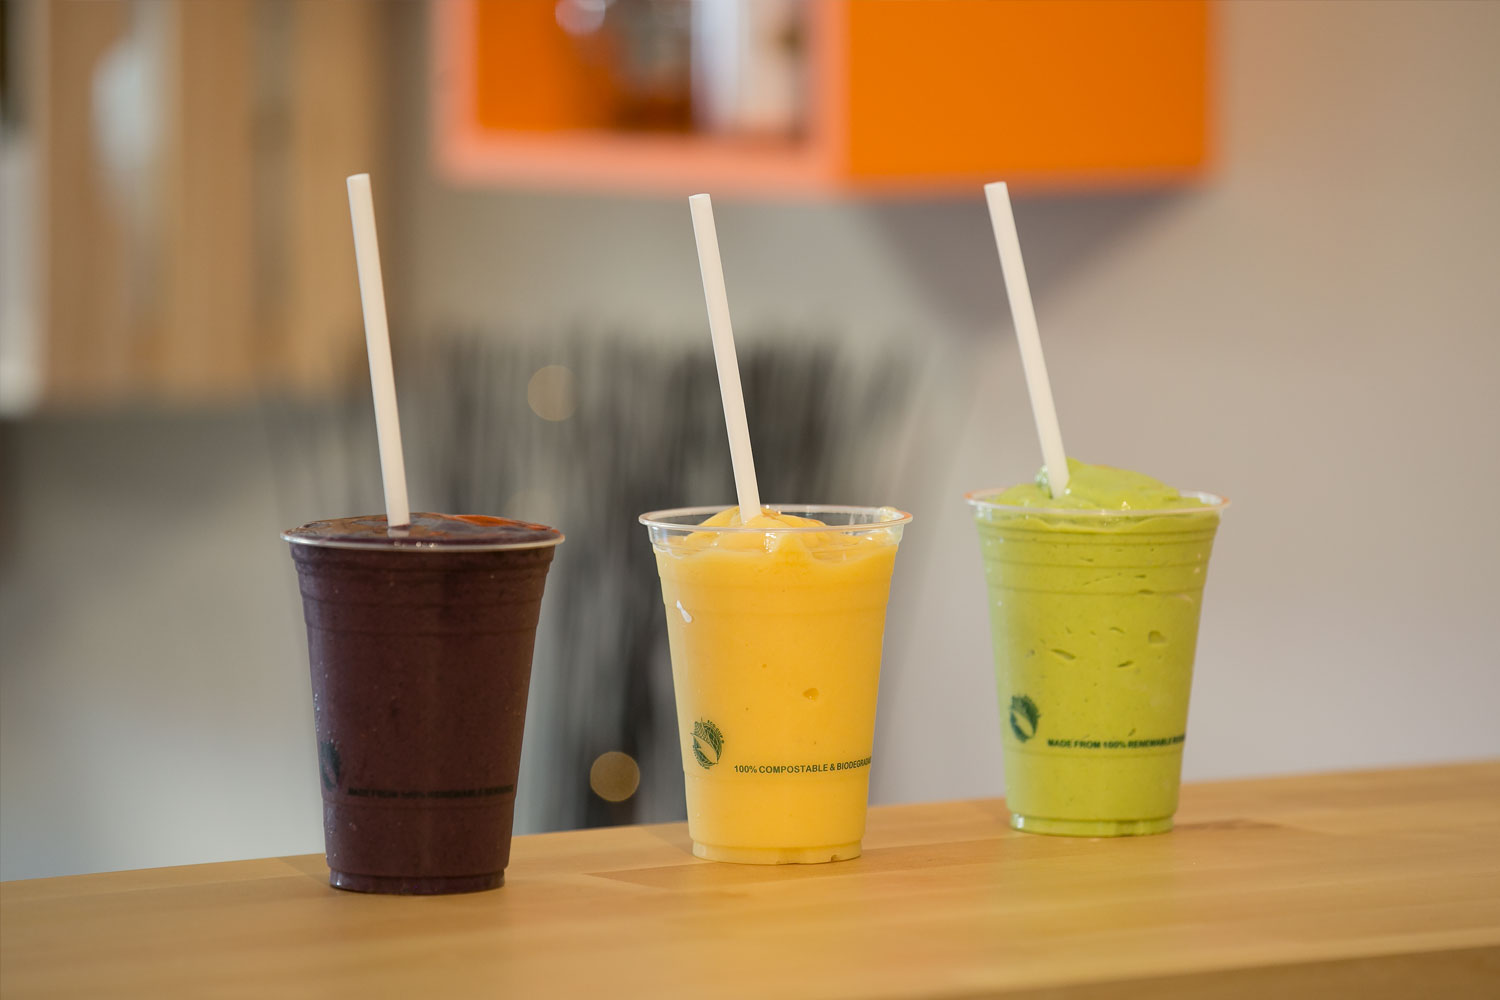 our Smoothie bar - Our smoothies are made from the best organic ingredients. Our customers return often to treat themselves to these nirvanic taste sensations.